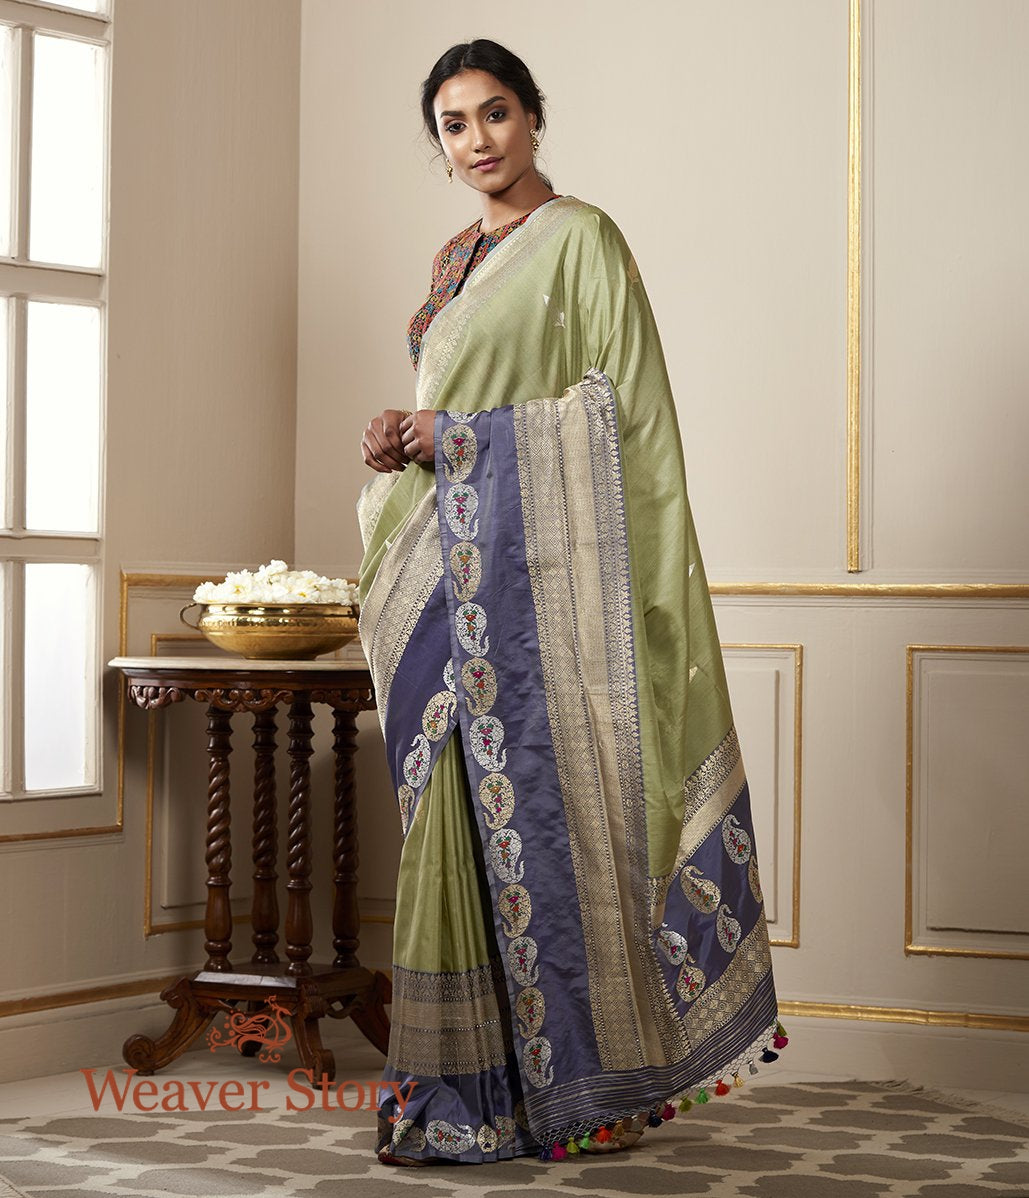 Handwoven Pista Green Tusser Saree with Blue Grey Border